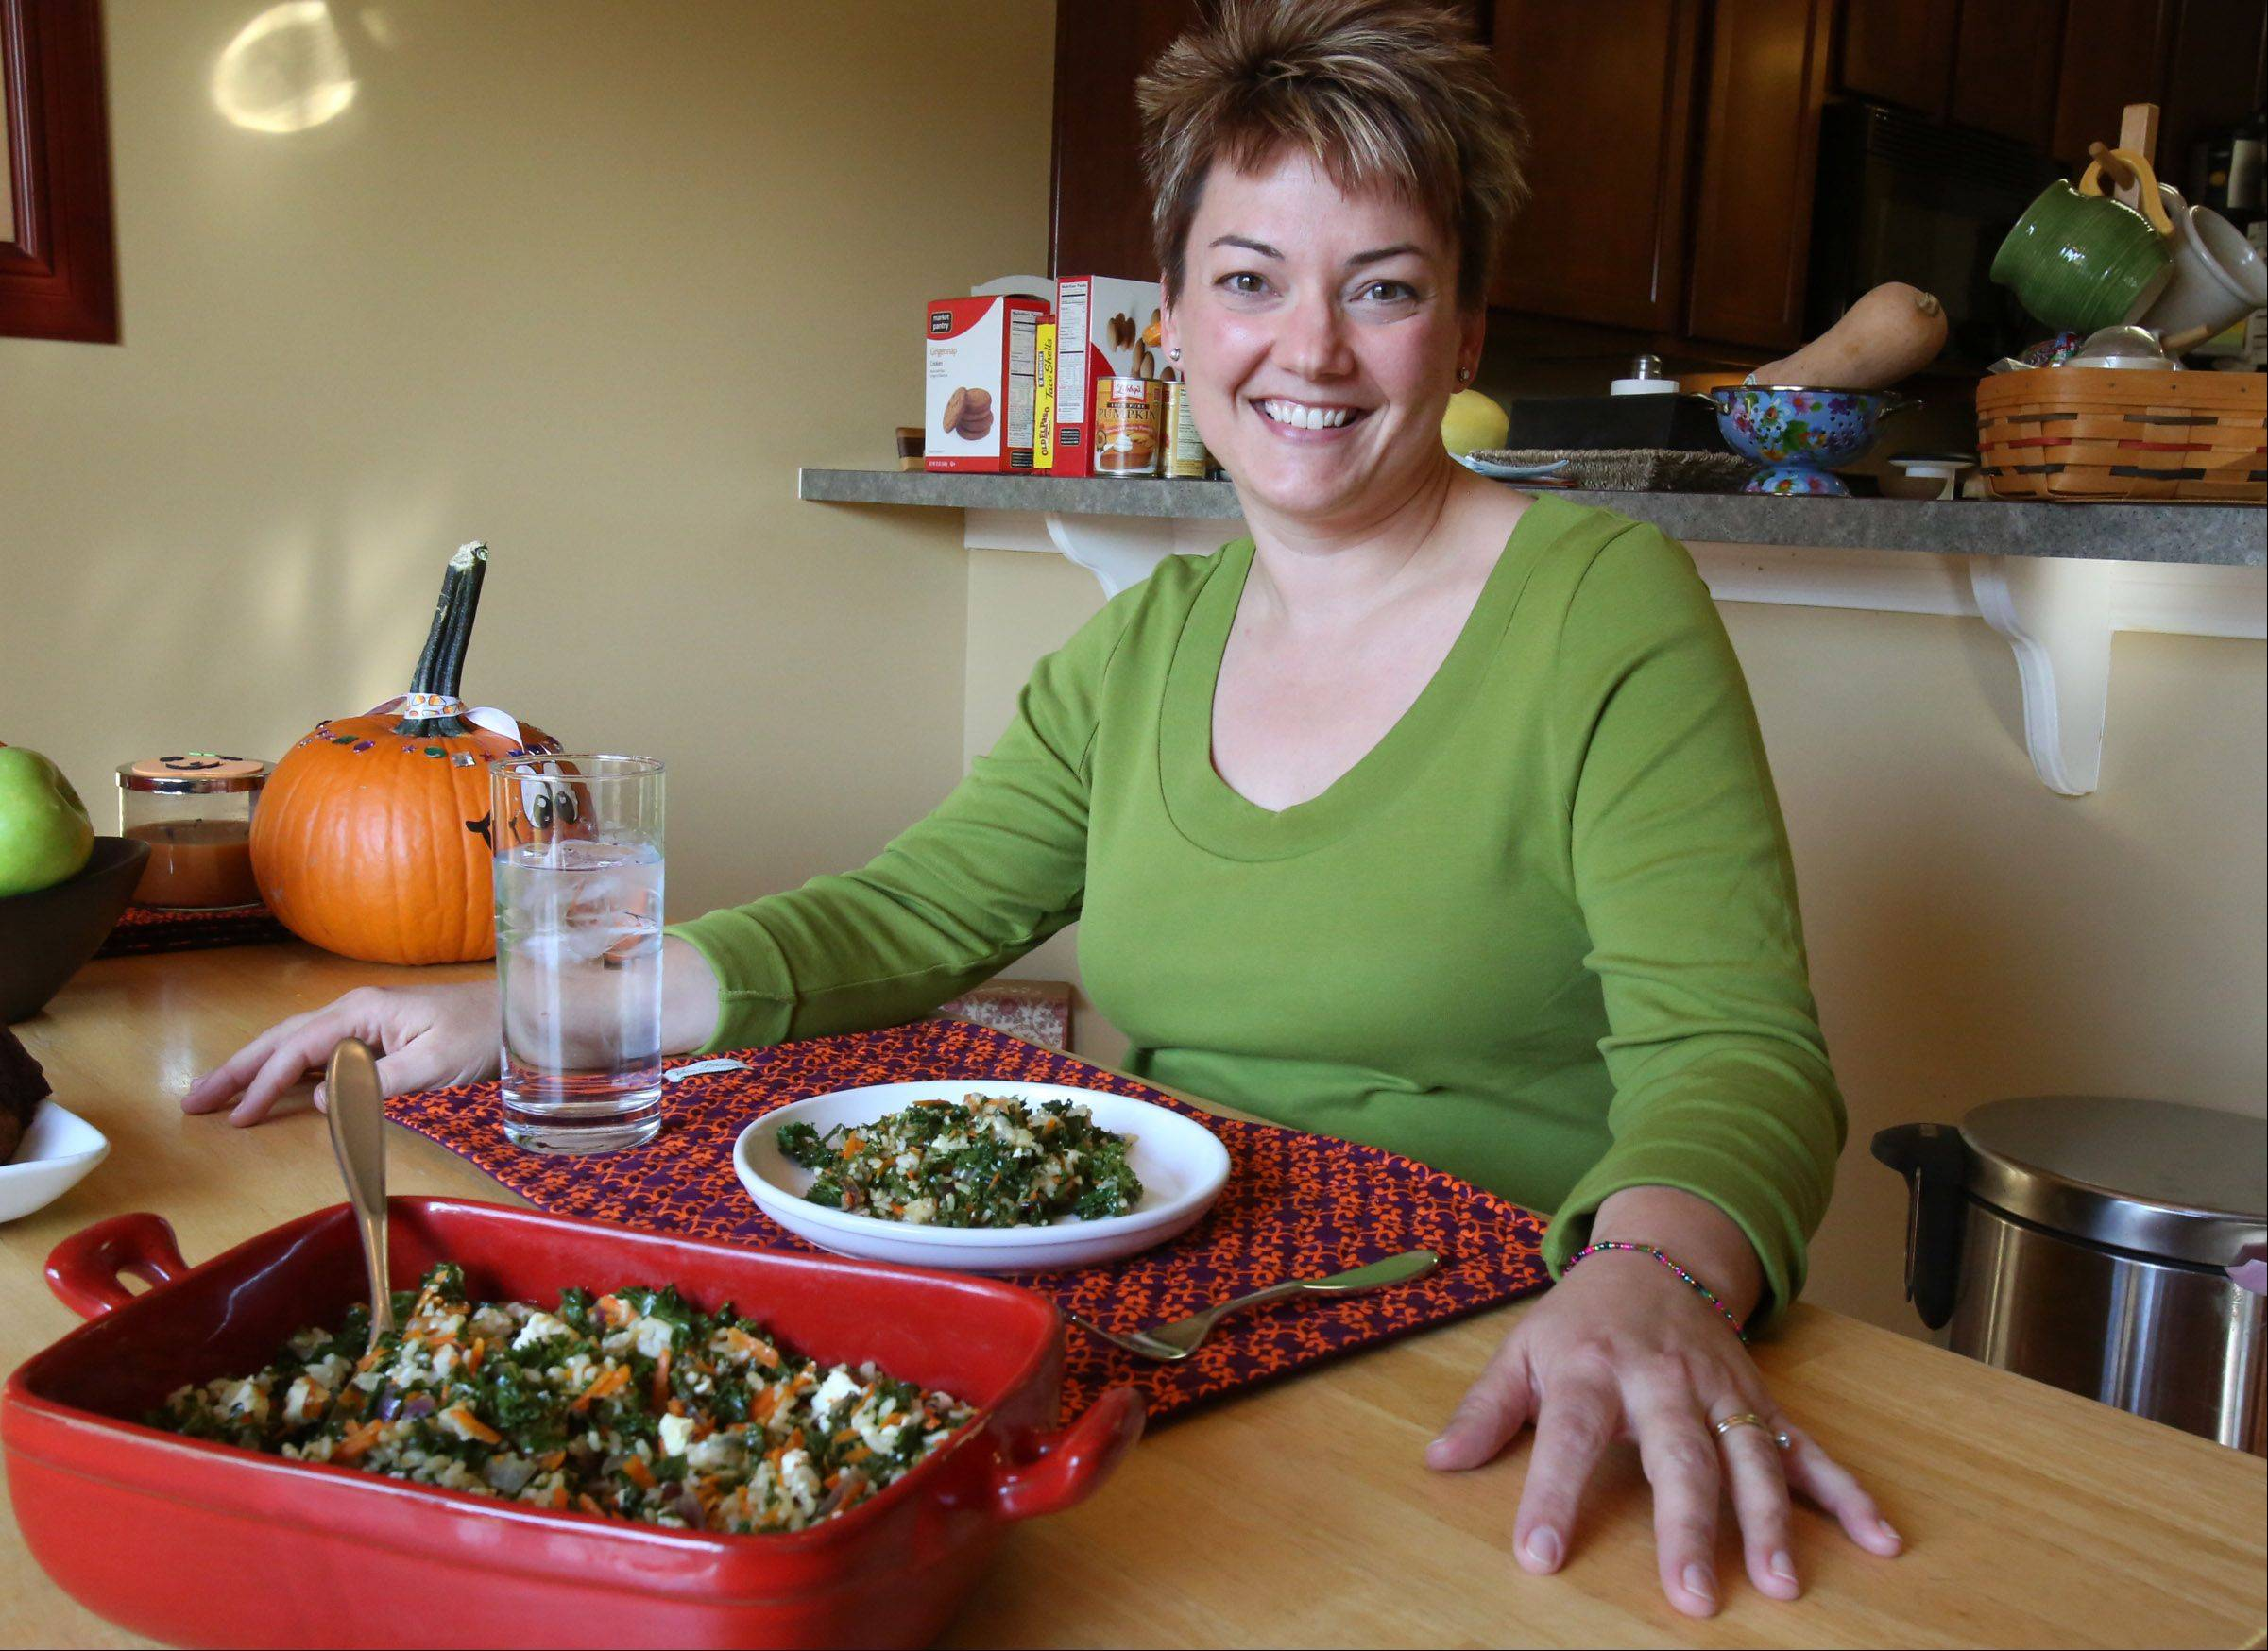 Christine Gallup builds dinner around nutrient-rich recipes like Sauteed Kale Rice, so her family can enjoy treats like her Double Cookie Brownies.